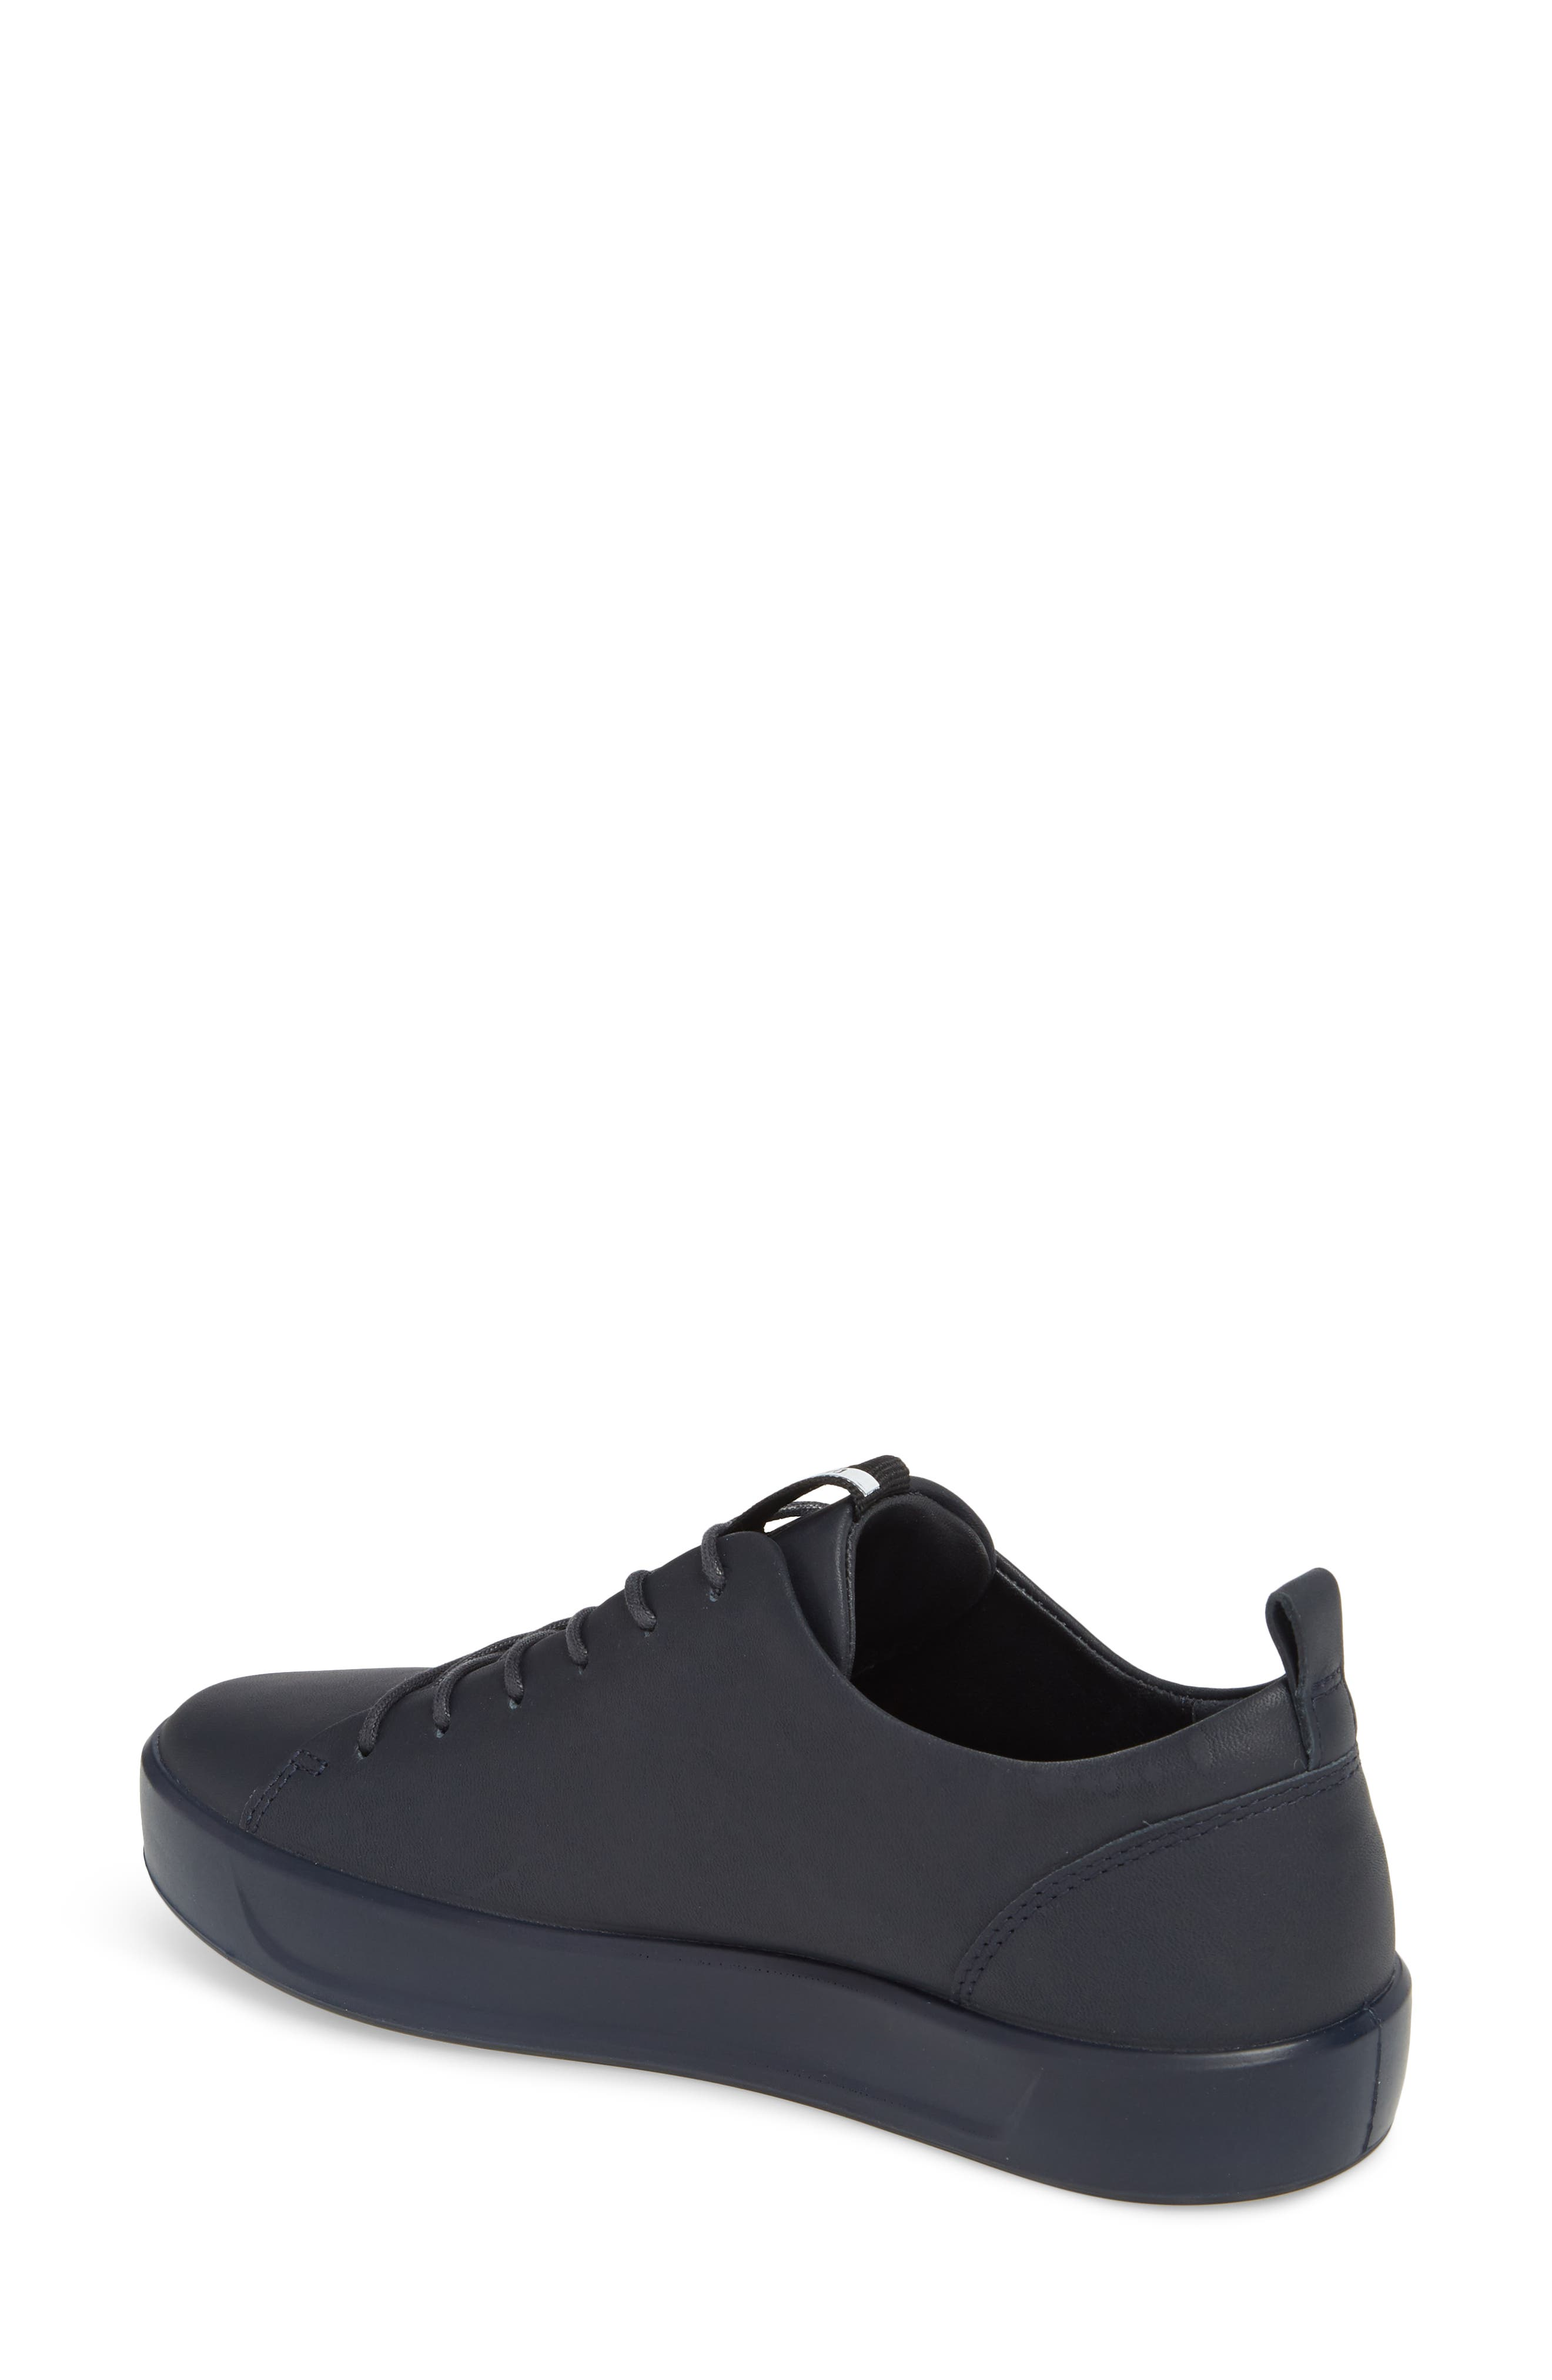 Soft 8 Sneaker,                             Alternate thumbnail 2, color,                             NIGHT SKY LEATHER